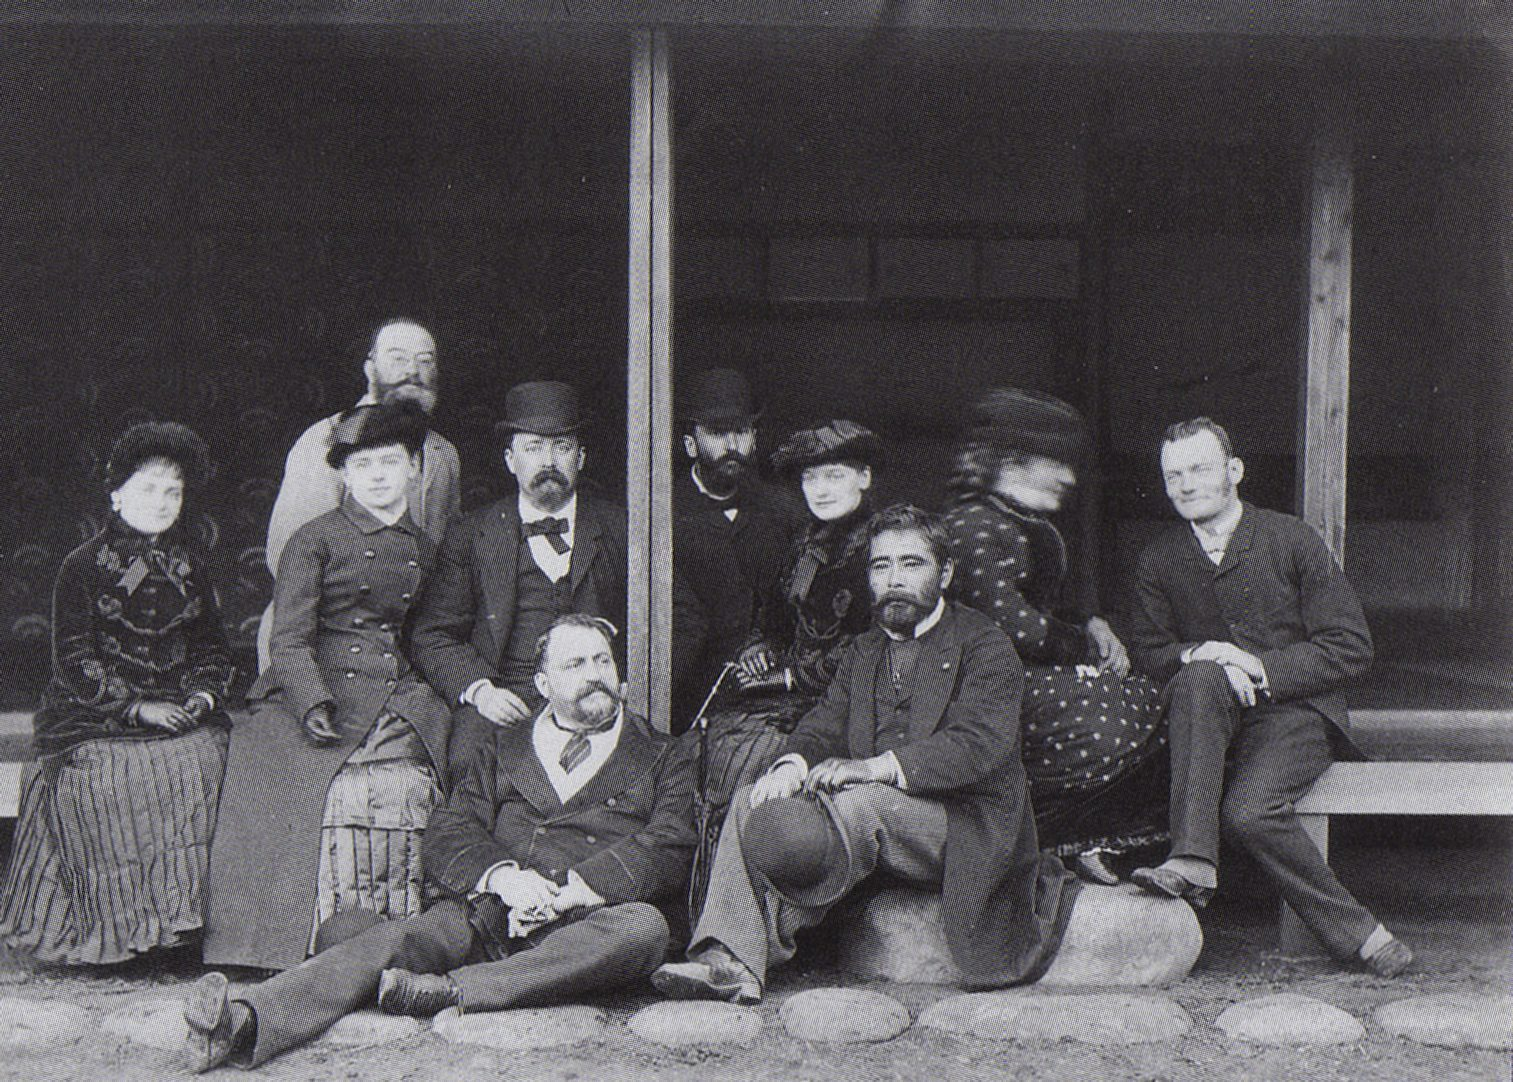 Felice Beato with Saigo Tsugumichi (both seated in front), with foreign friends. Photograph by Hugues Krafft in 1882.